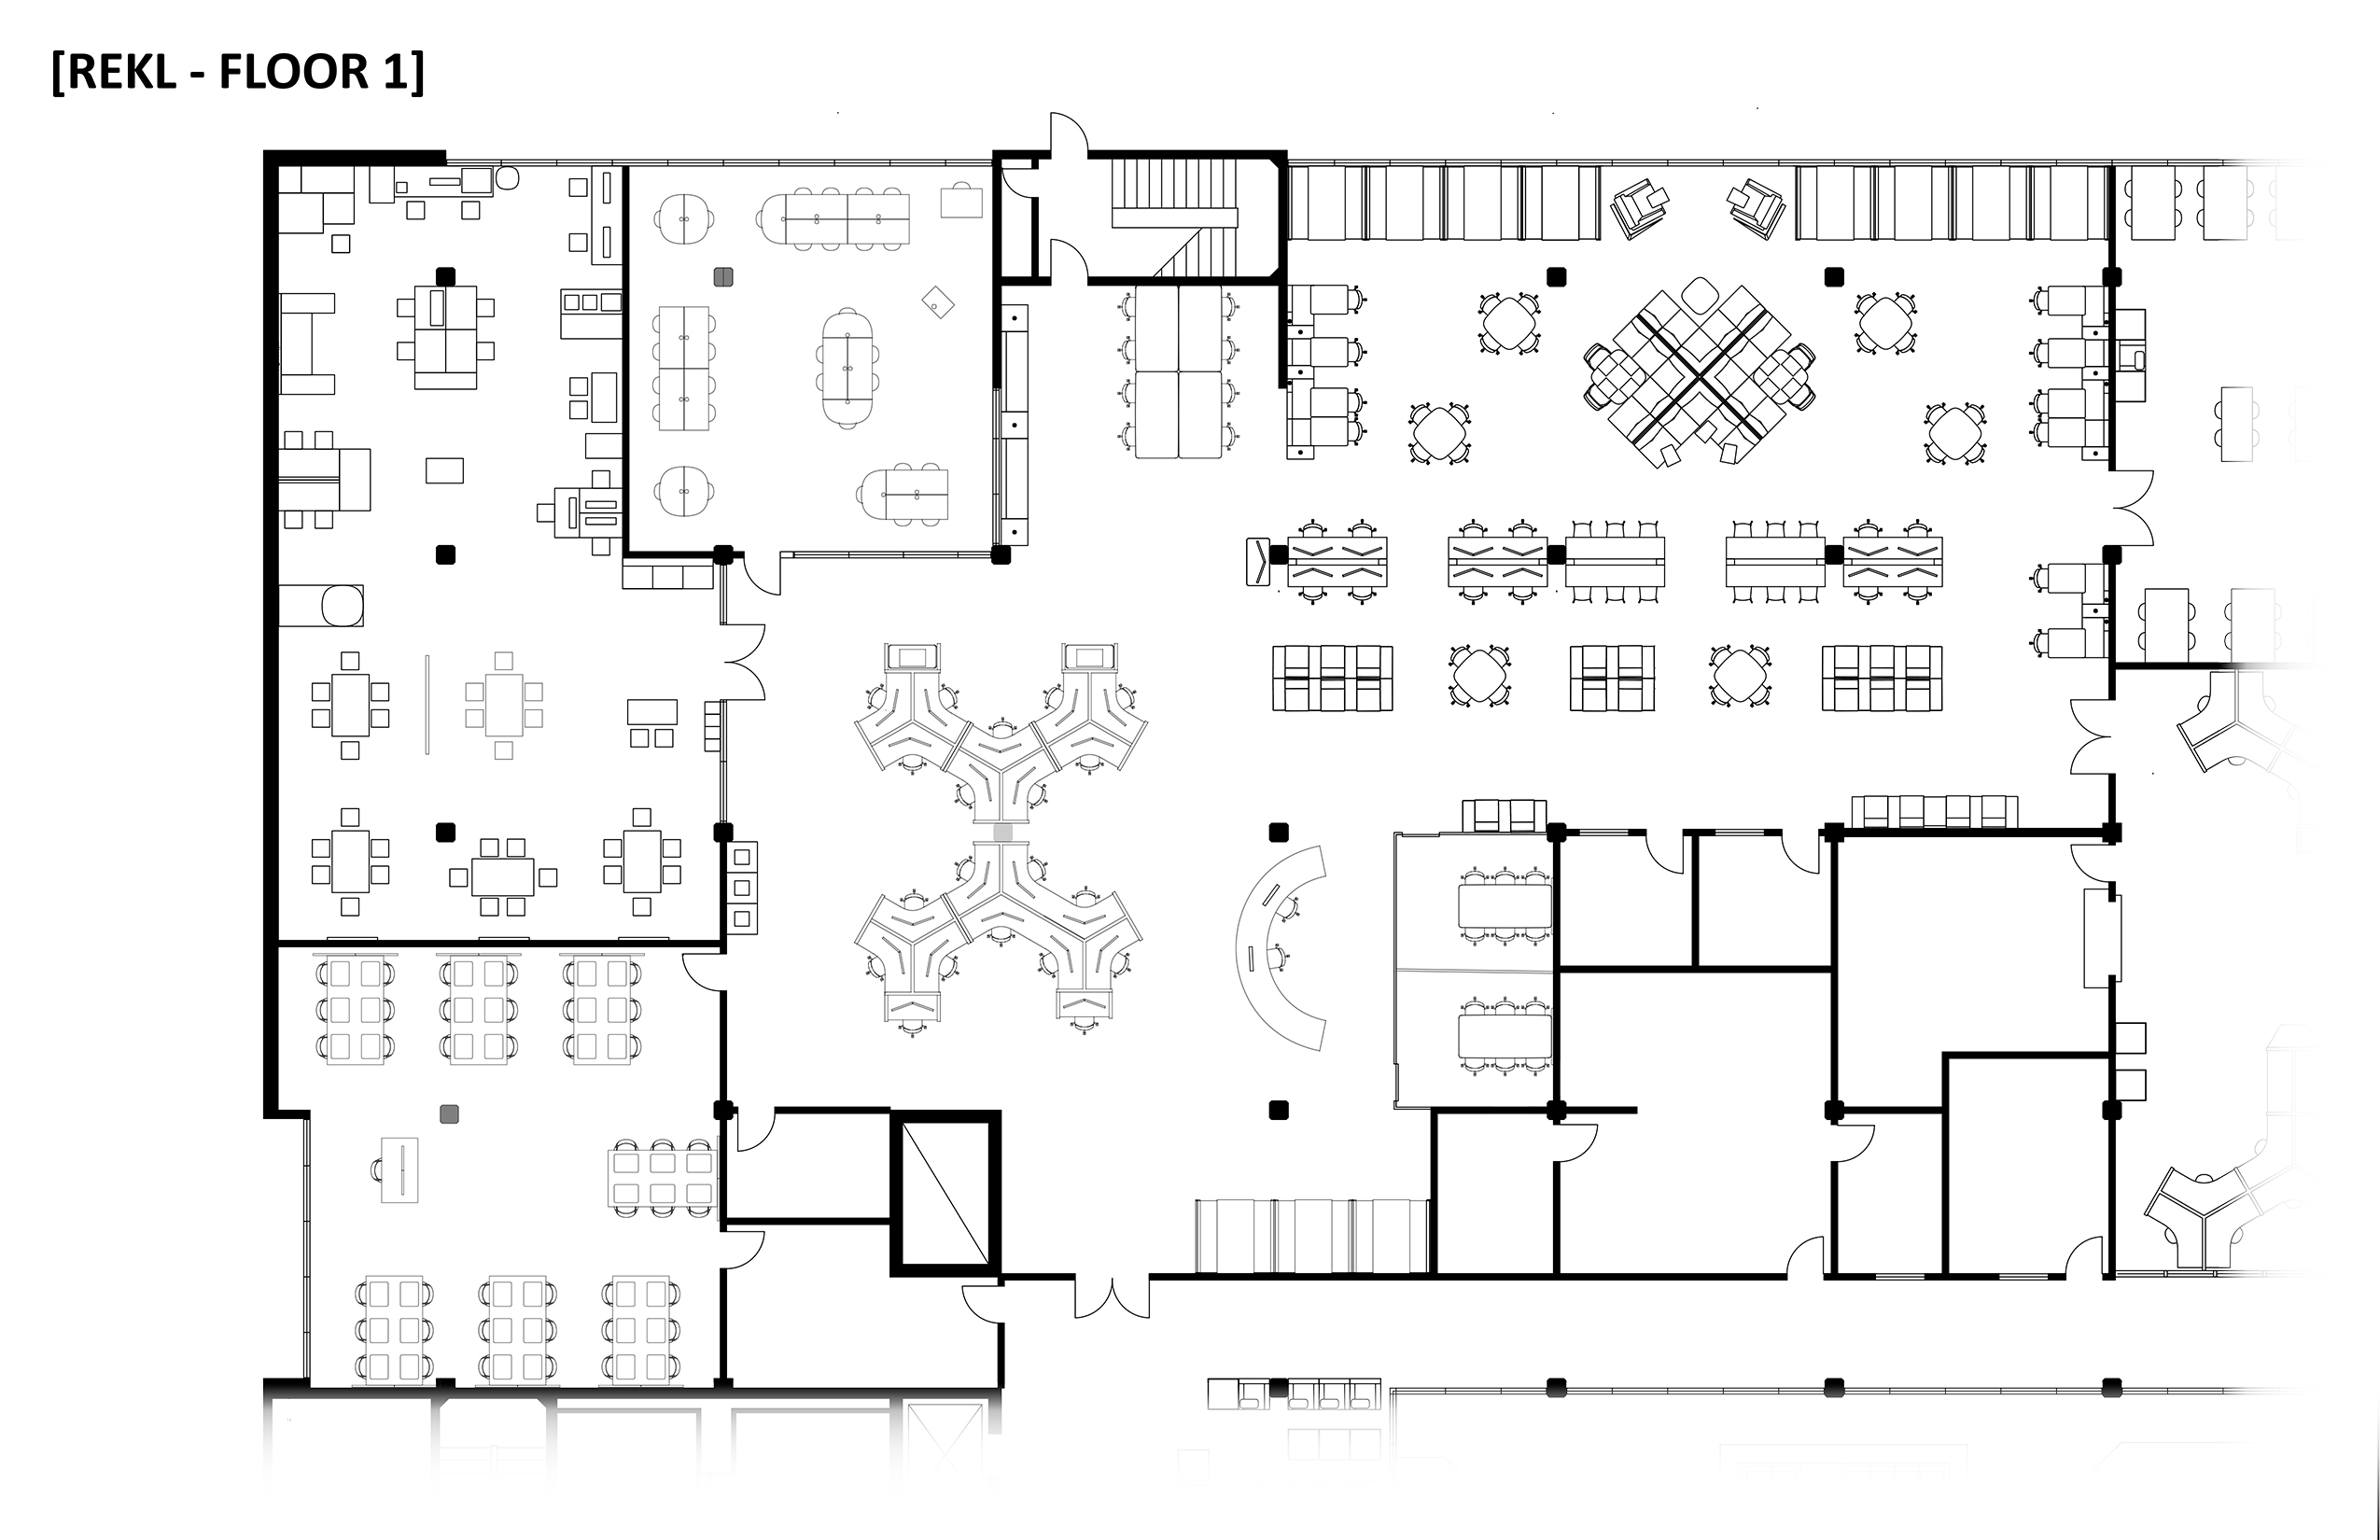 Below Is A Detailed Floor Plan Depicting The Furniture Layout For The  Student Success Fee Renovation Areas.